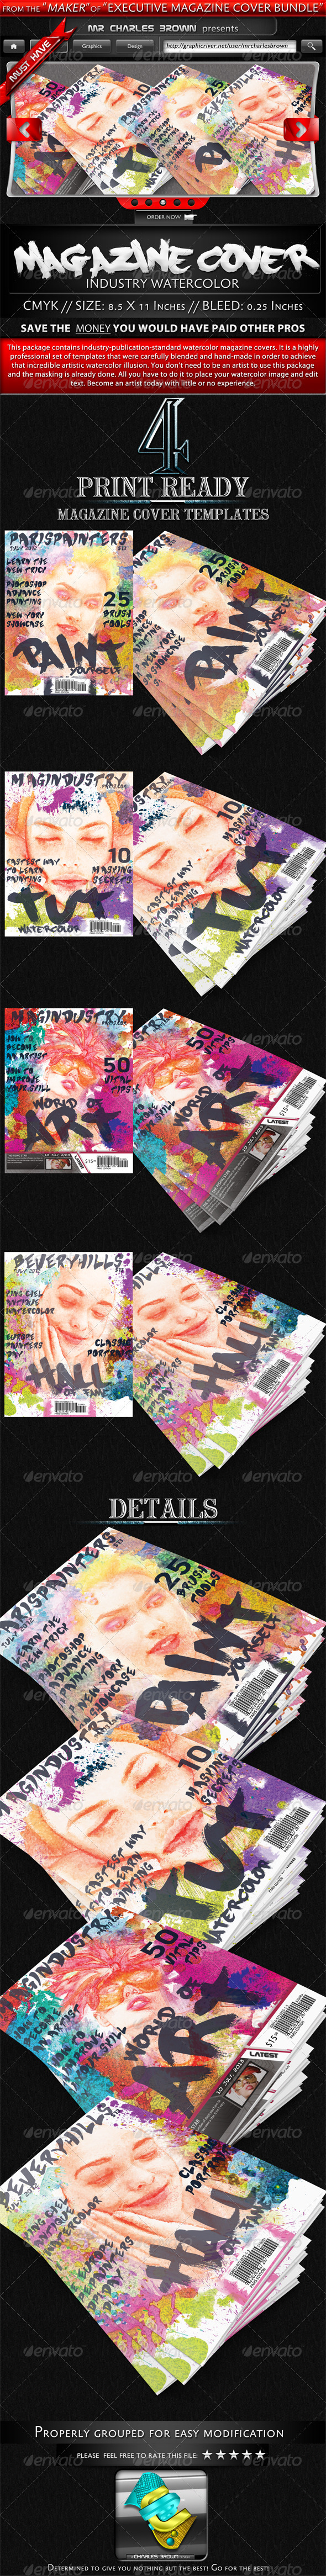 Industry Watercolor Magazine Cover Templates